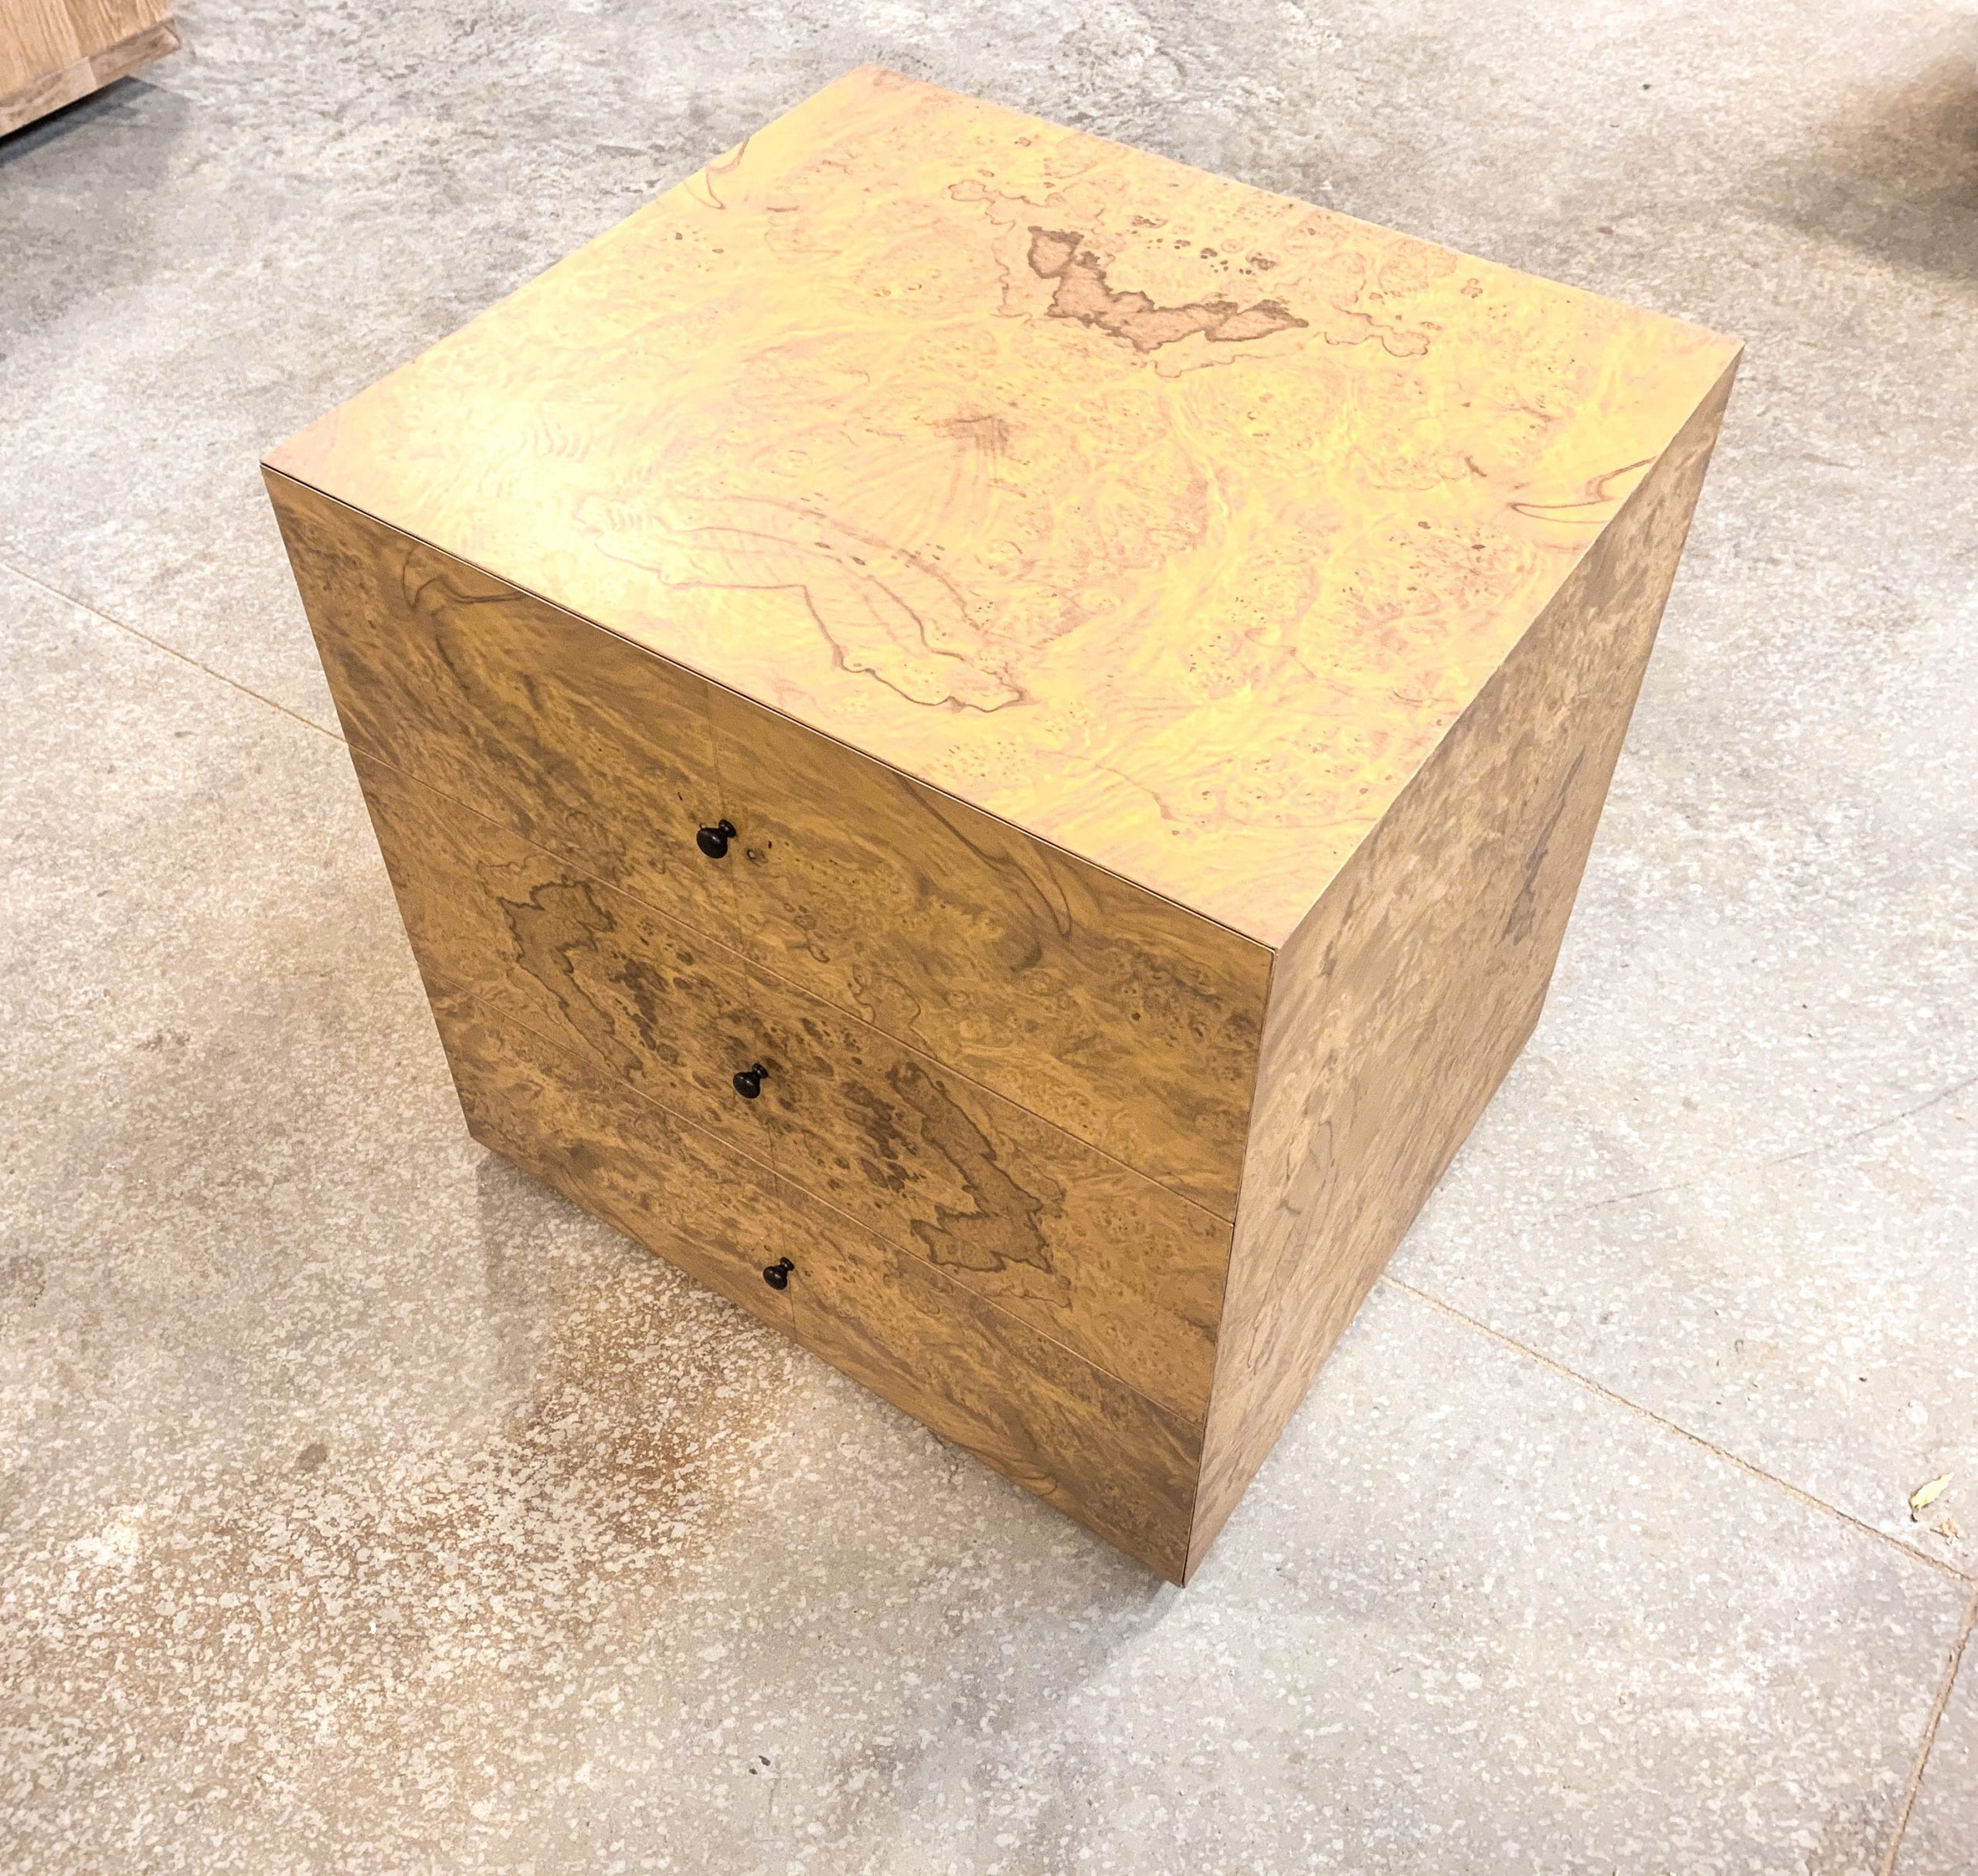 Olive ash burl side tables from top